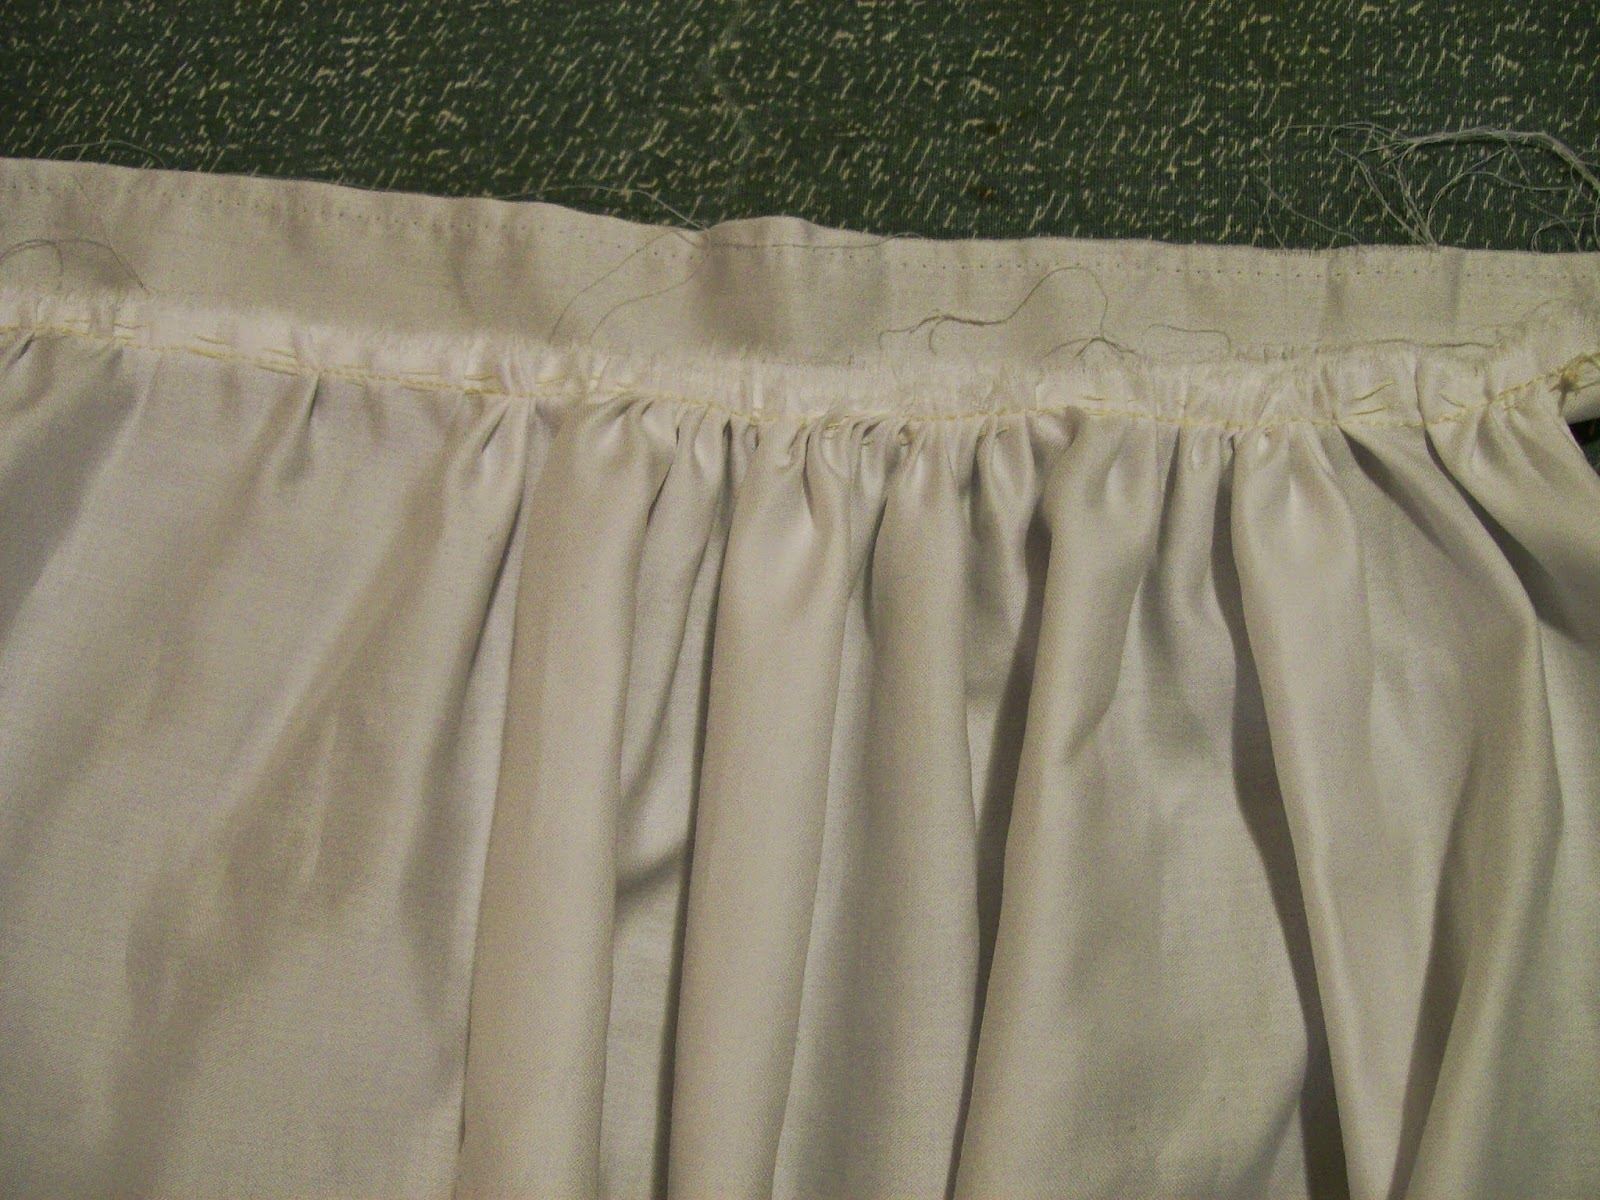 Skirt for Regency bodiced petticoat.